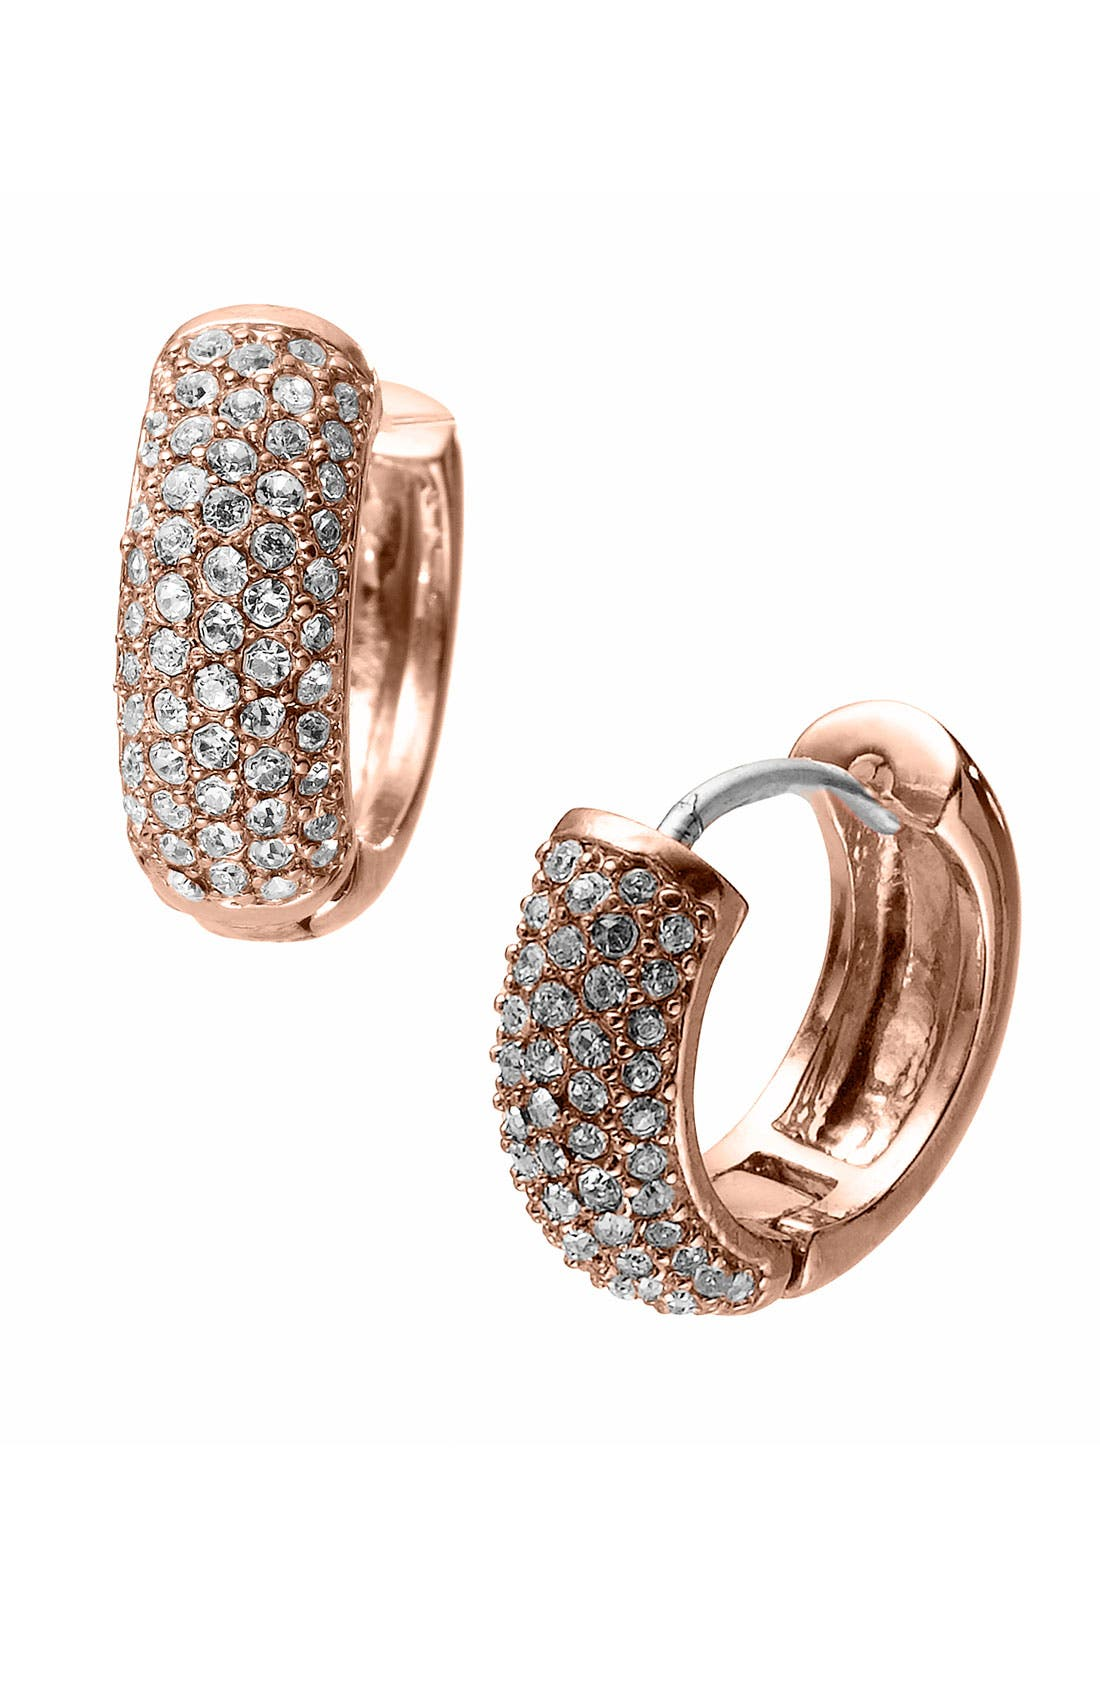 Main Image - Michael Kors 'Spring Sparkle' Hoop Earrings